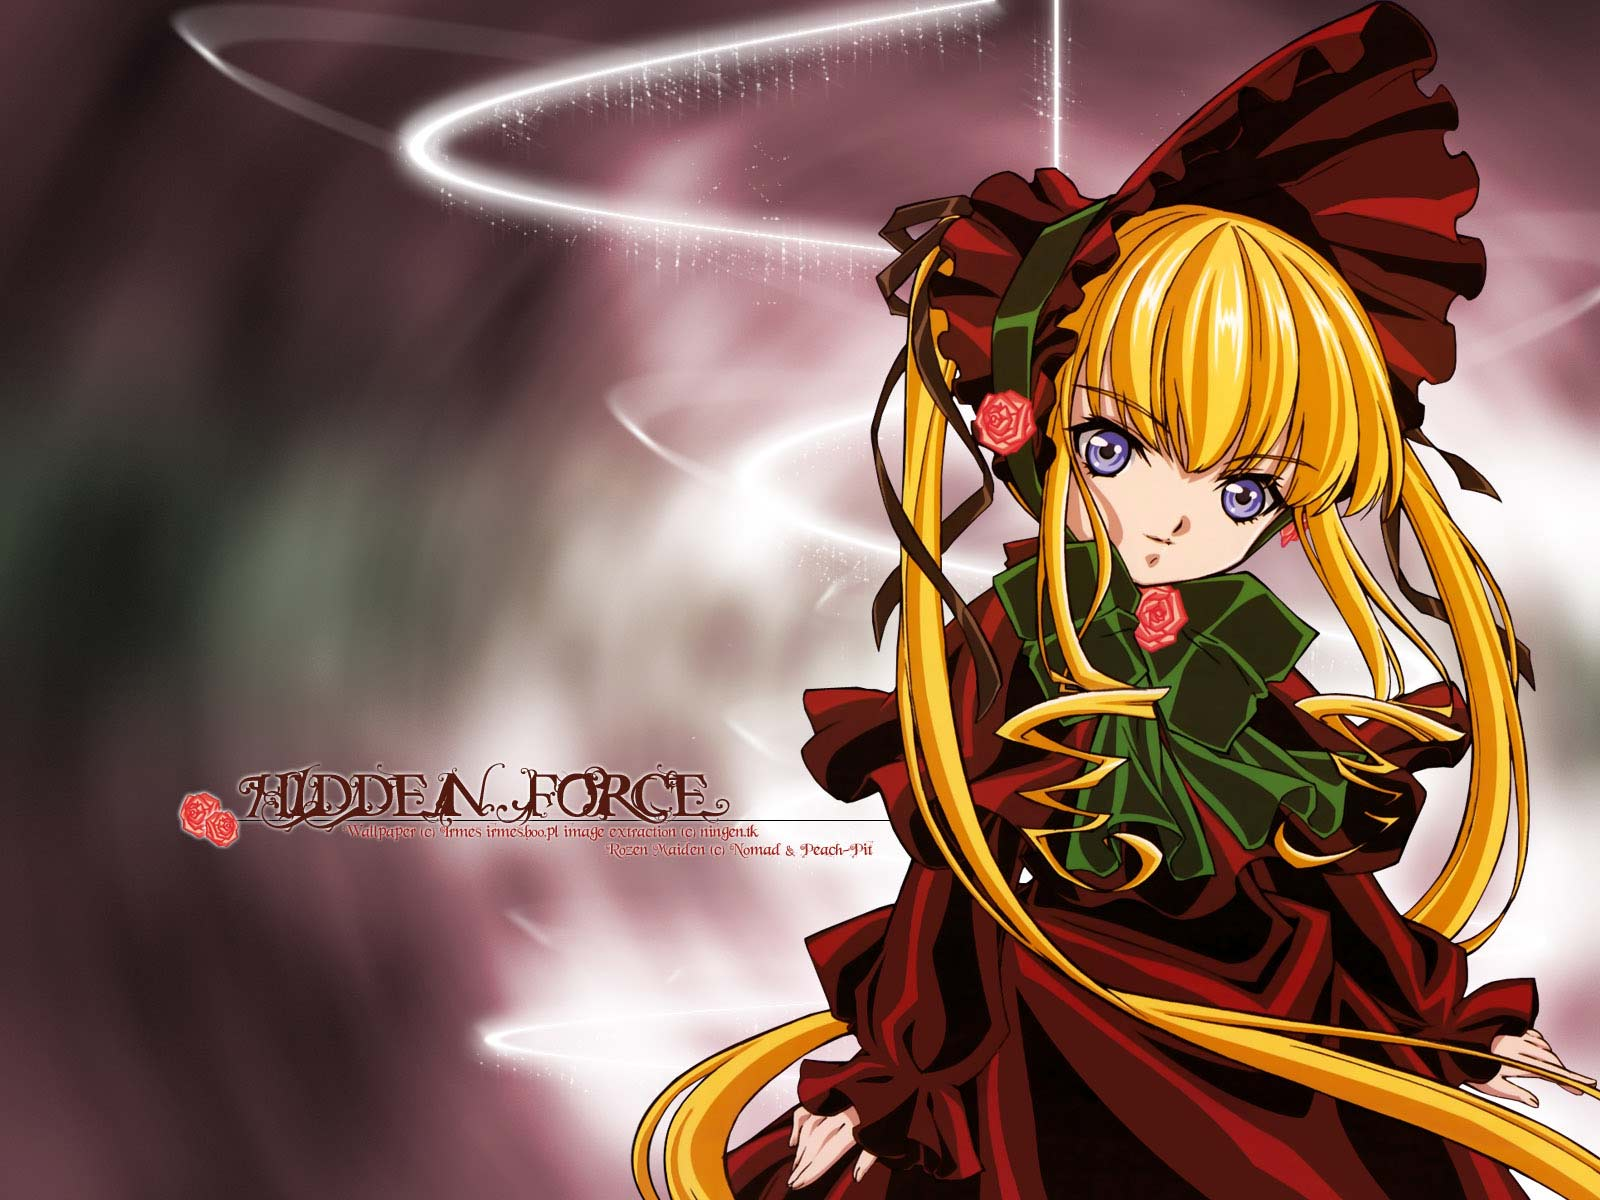 Rozen Maiden manga wallpaper